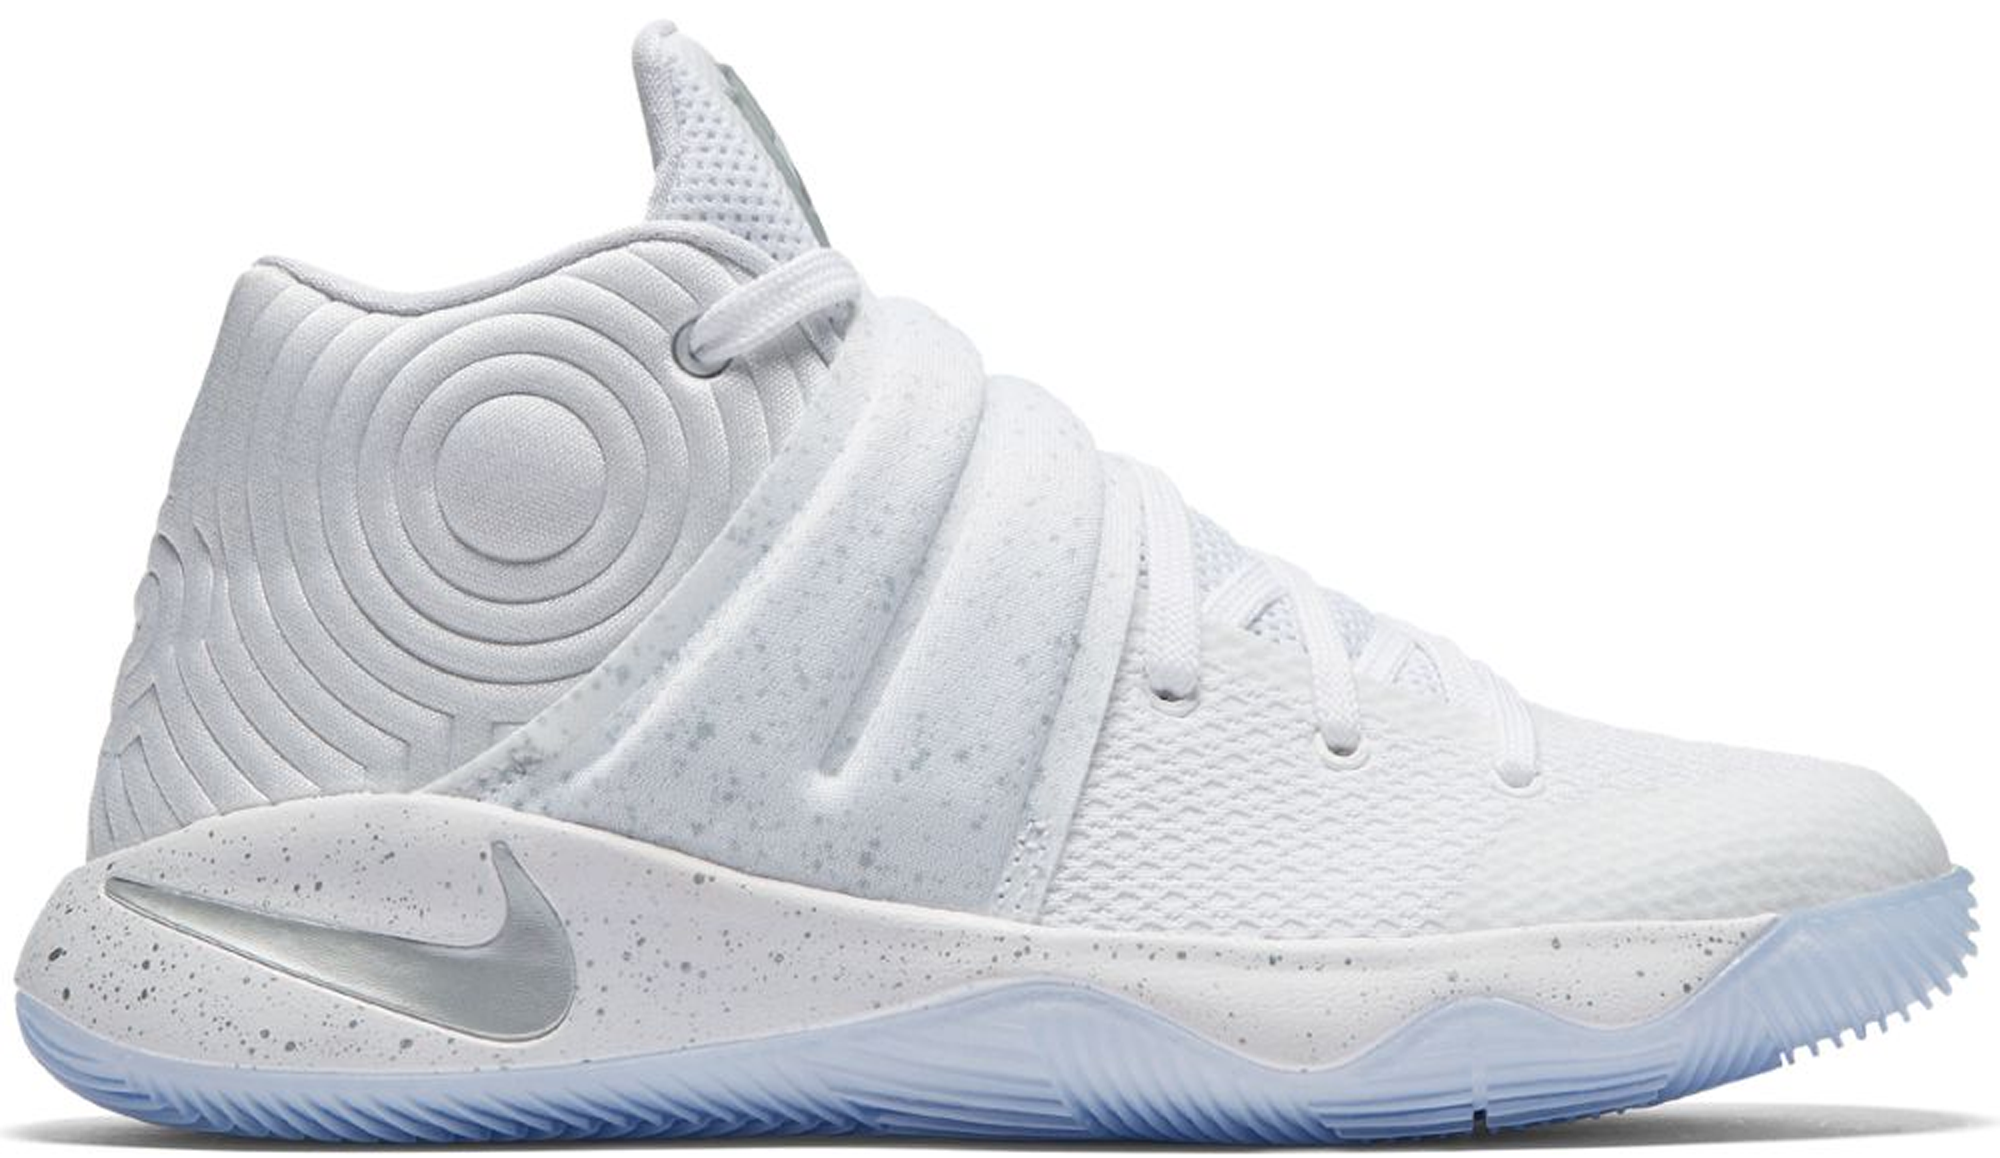 65c1fc01d0806 inexpensive nike kyrie 2 76966 0d7c8; release date kyrie 2 silver speckle  gs 557b5 7aabe